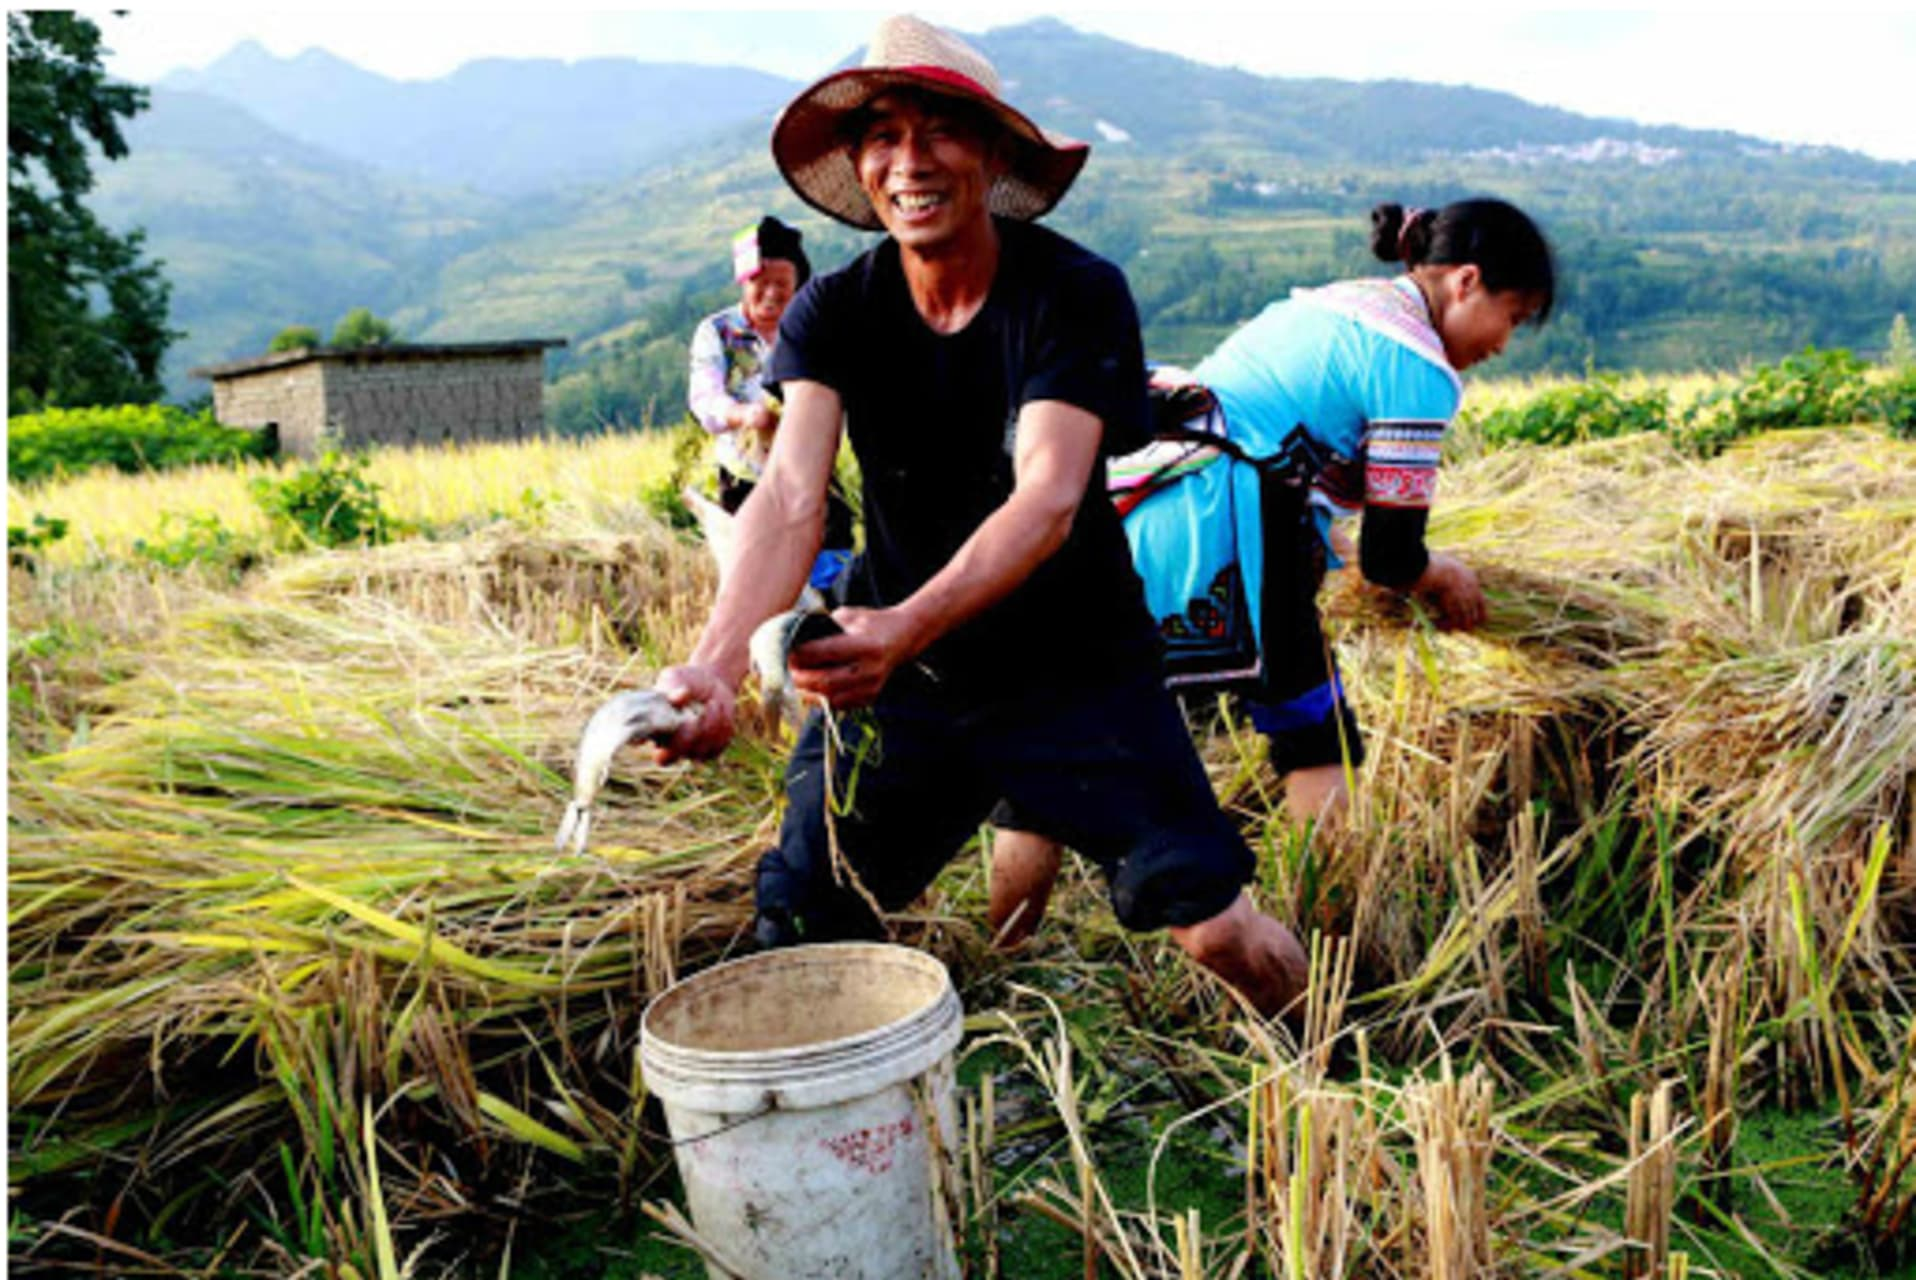 Guilin - Dragon Boat Festival 2021: Catching fish in the Rice Terrace